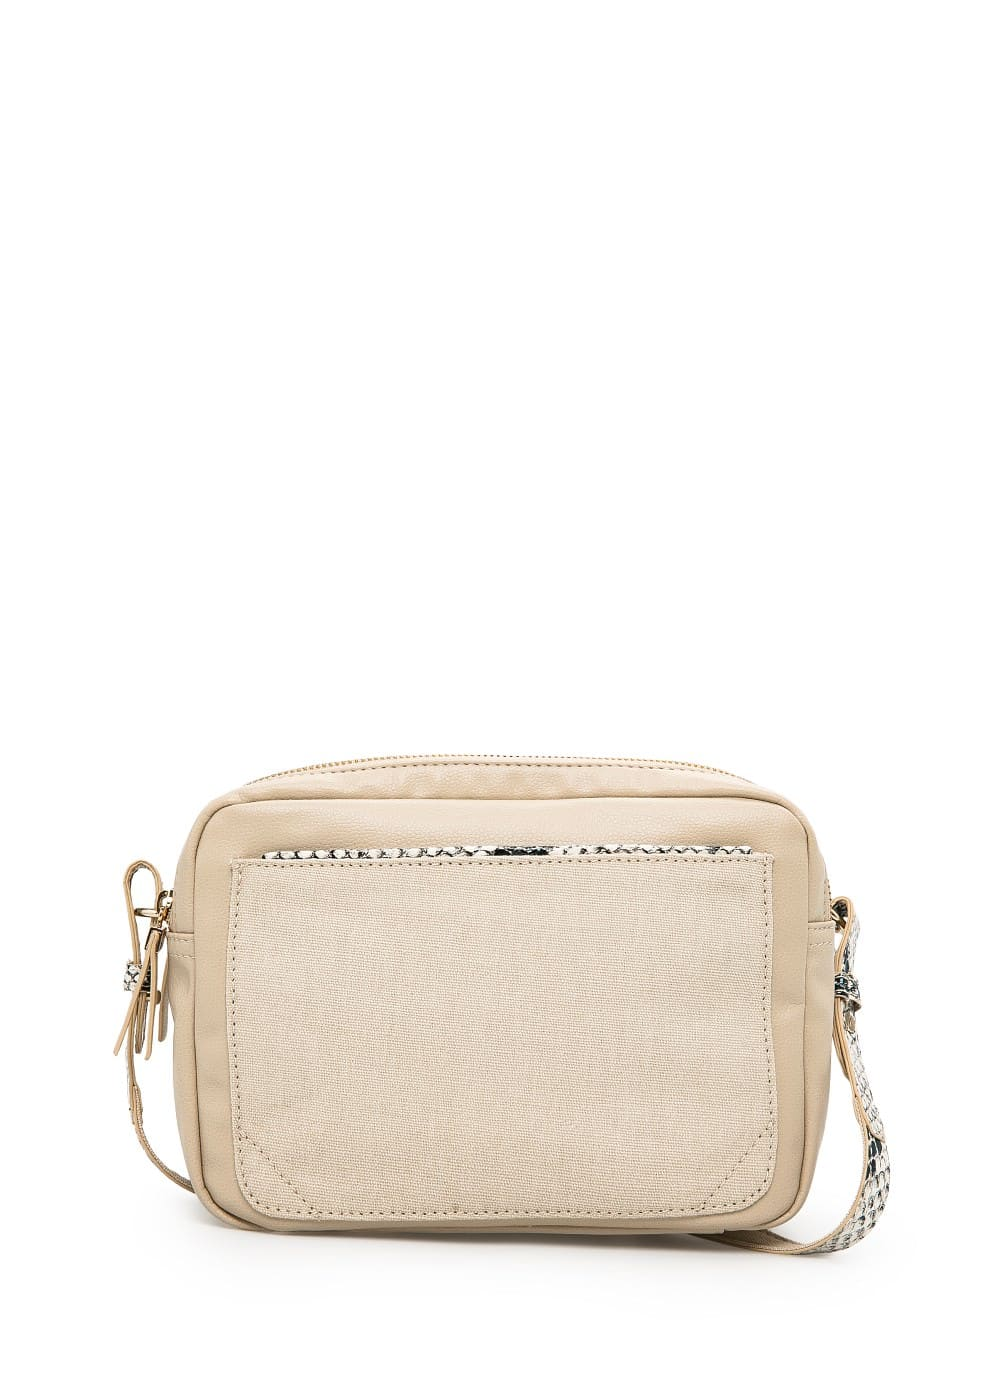 Trim cross body bag